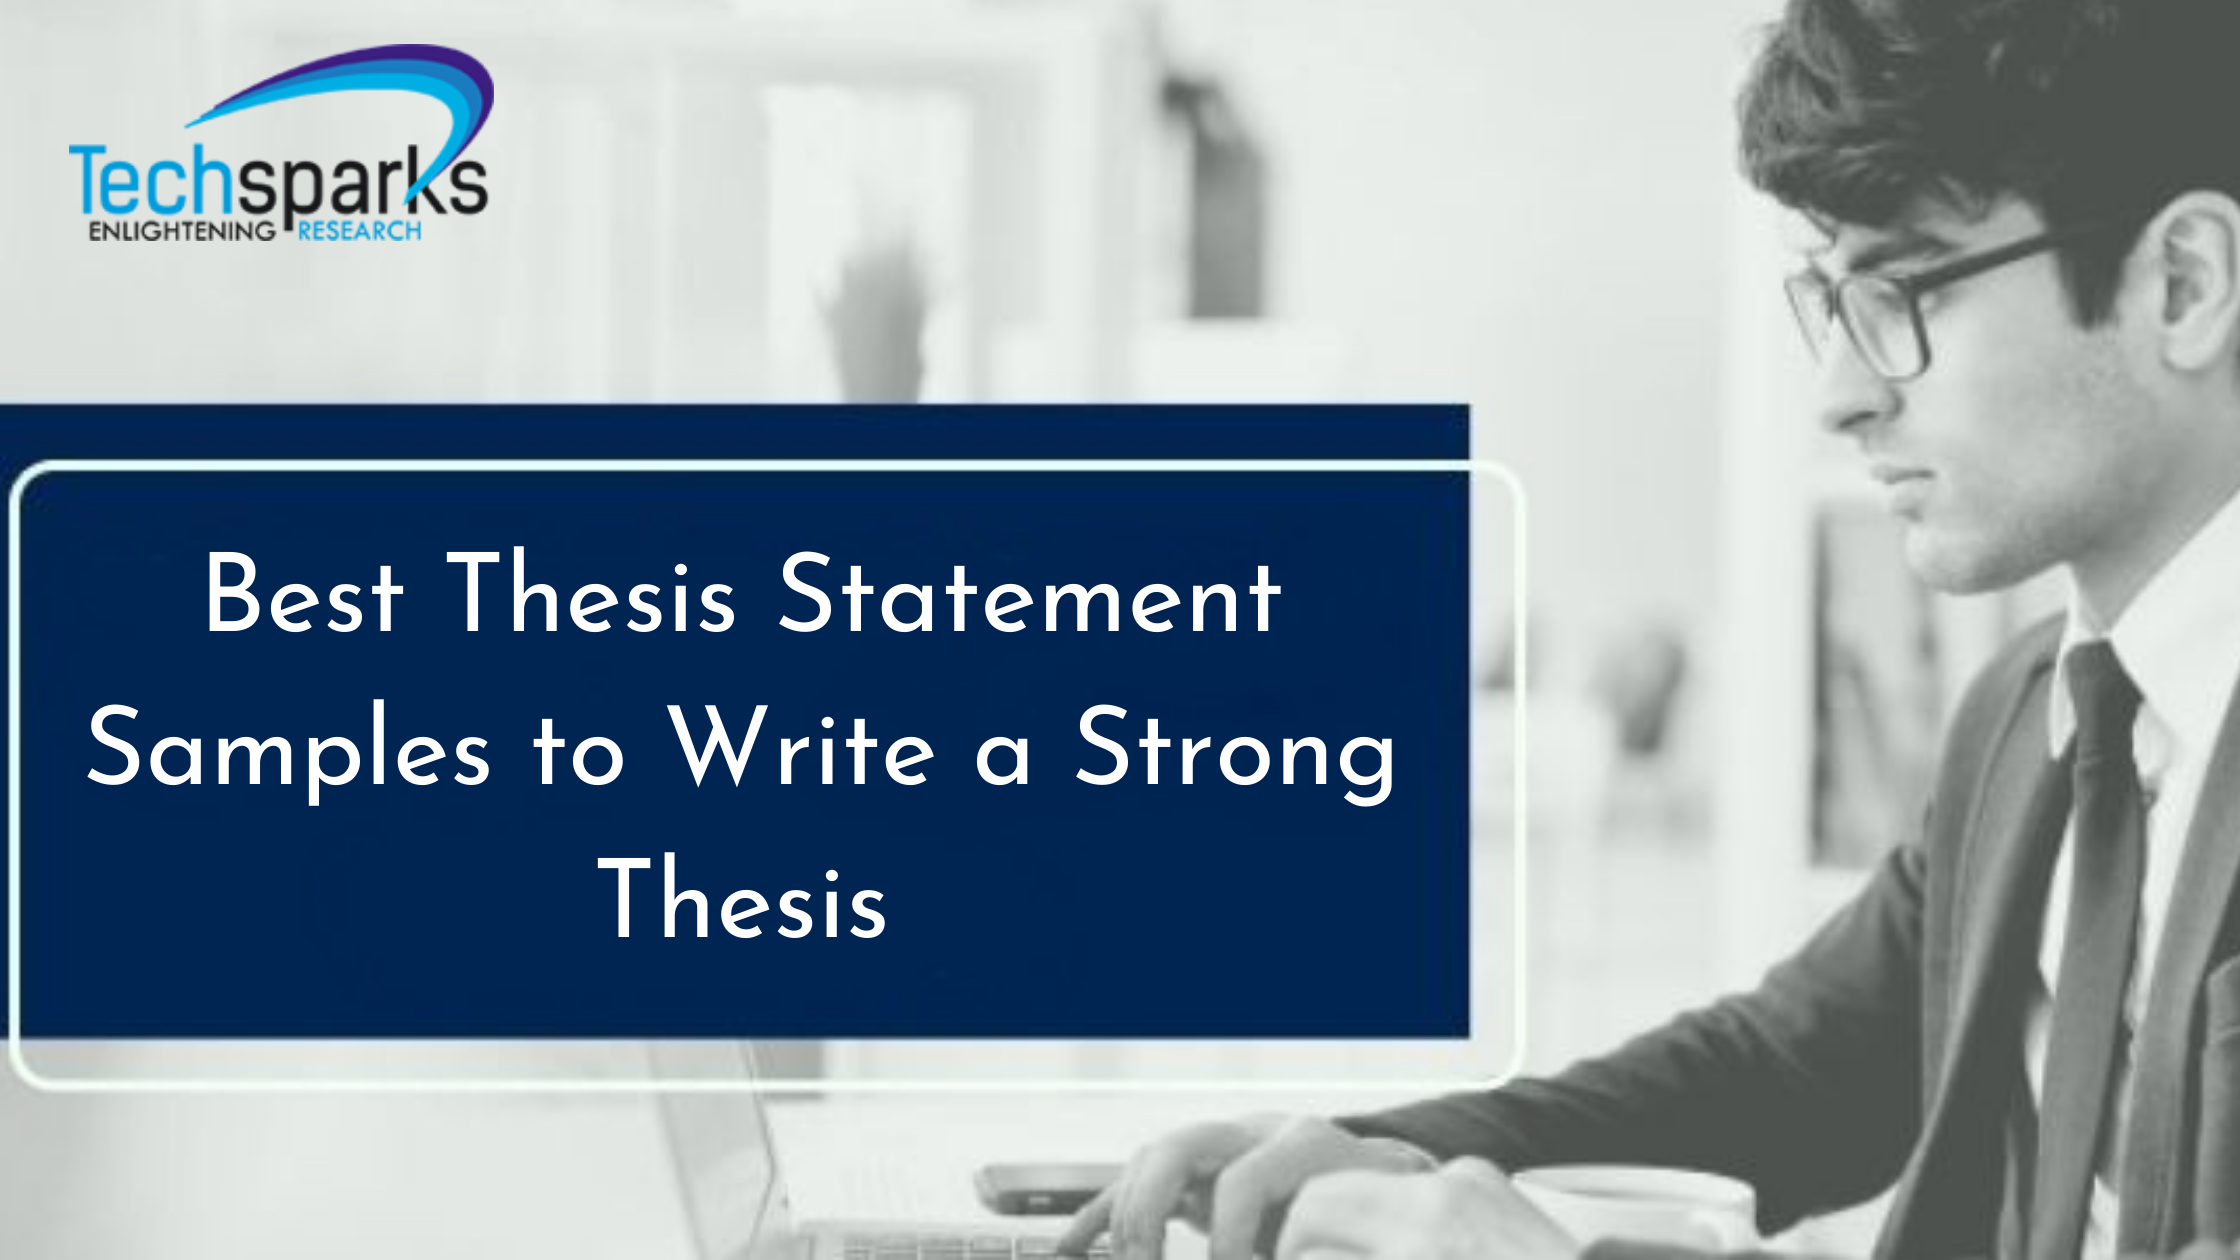 Best Thesis Statement Samples to Write a Strong Thesis